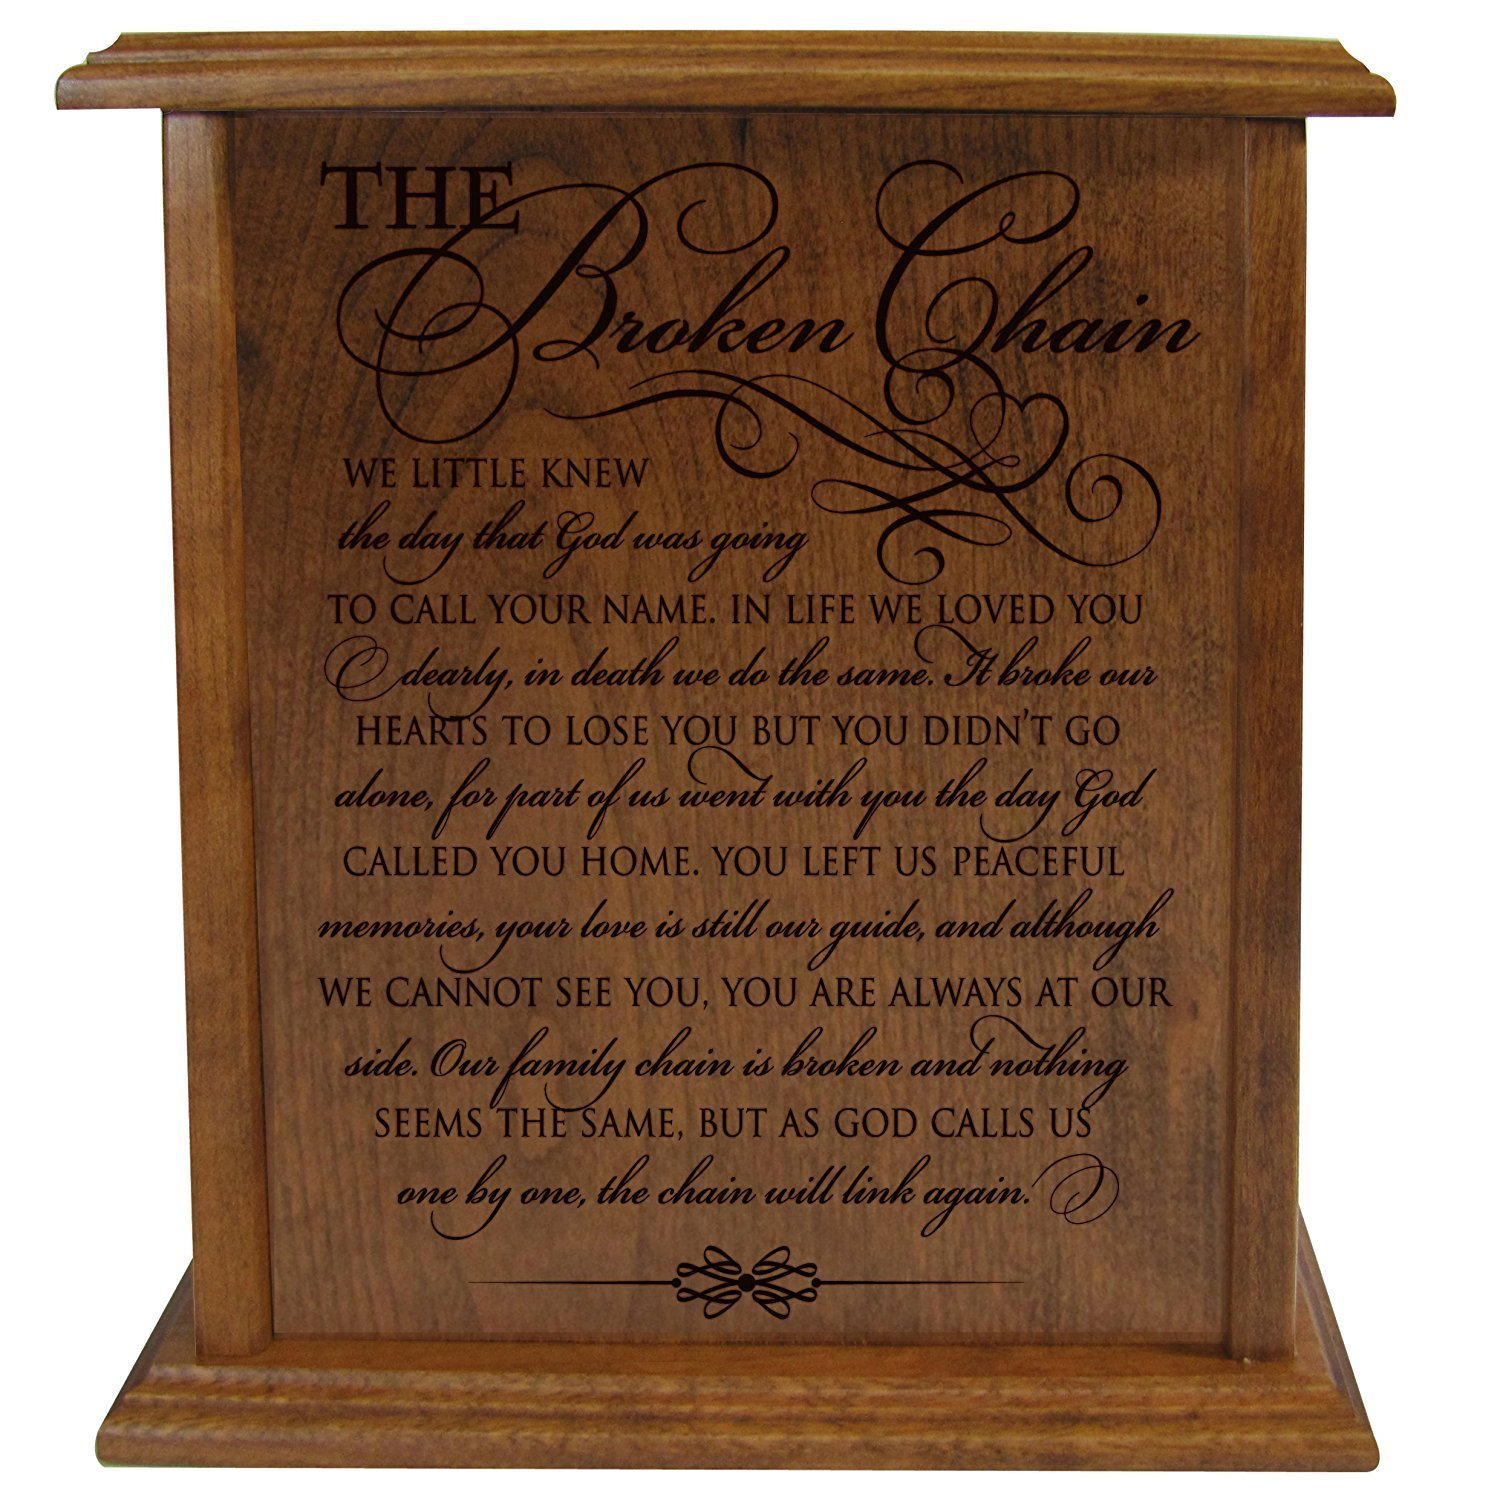 The Broken Chain Keepsake Funeral Cremation Urn for Human Adult Ashes Hand Made in Solid Cherry Wood Hand Finished and Laser Engraved Wooden Cremation Urn in Home or Niche at Columbarium LifeSong Milestones 63939NP